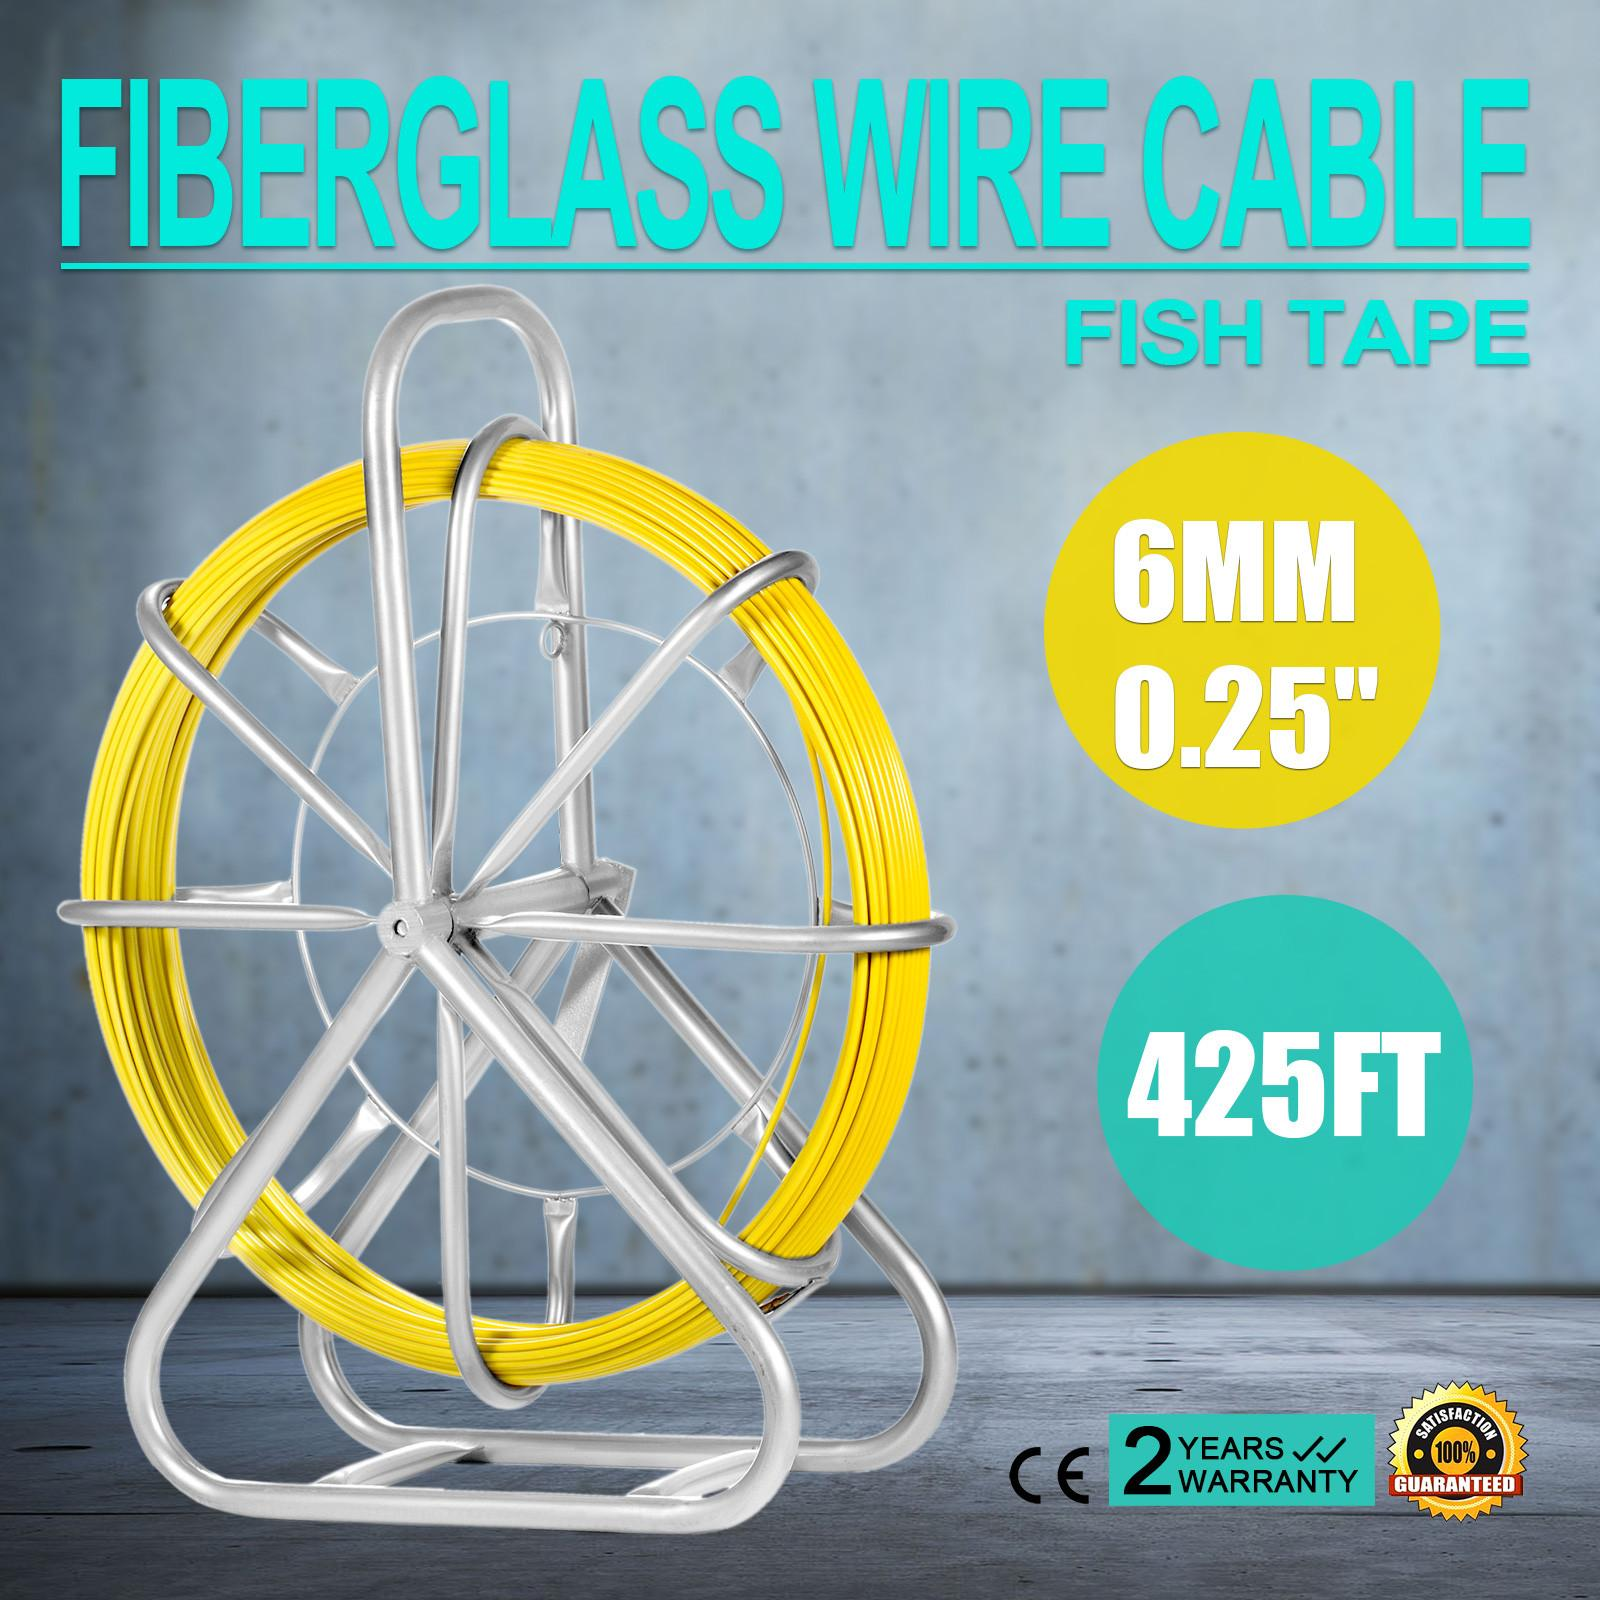 hight resolution of 2019 vevor fish tape fiberglass 6mm 425ft duct rodder fish tape continuous fiberglass wire cable running with cage and wheel stand 425ft from sihao